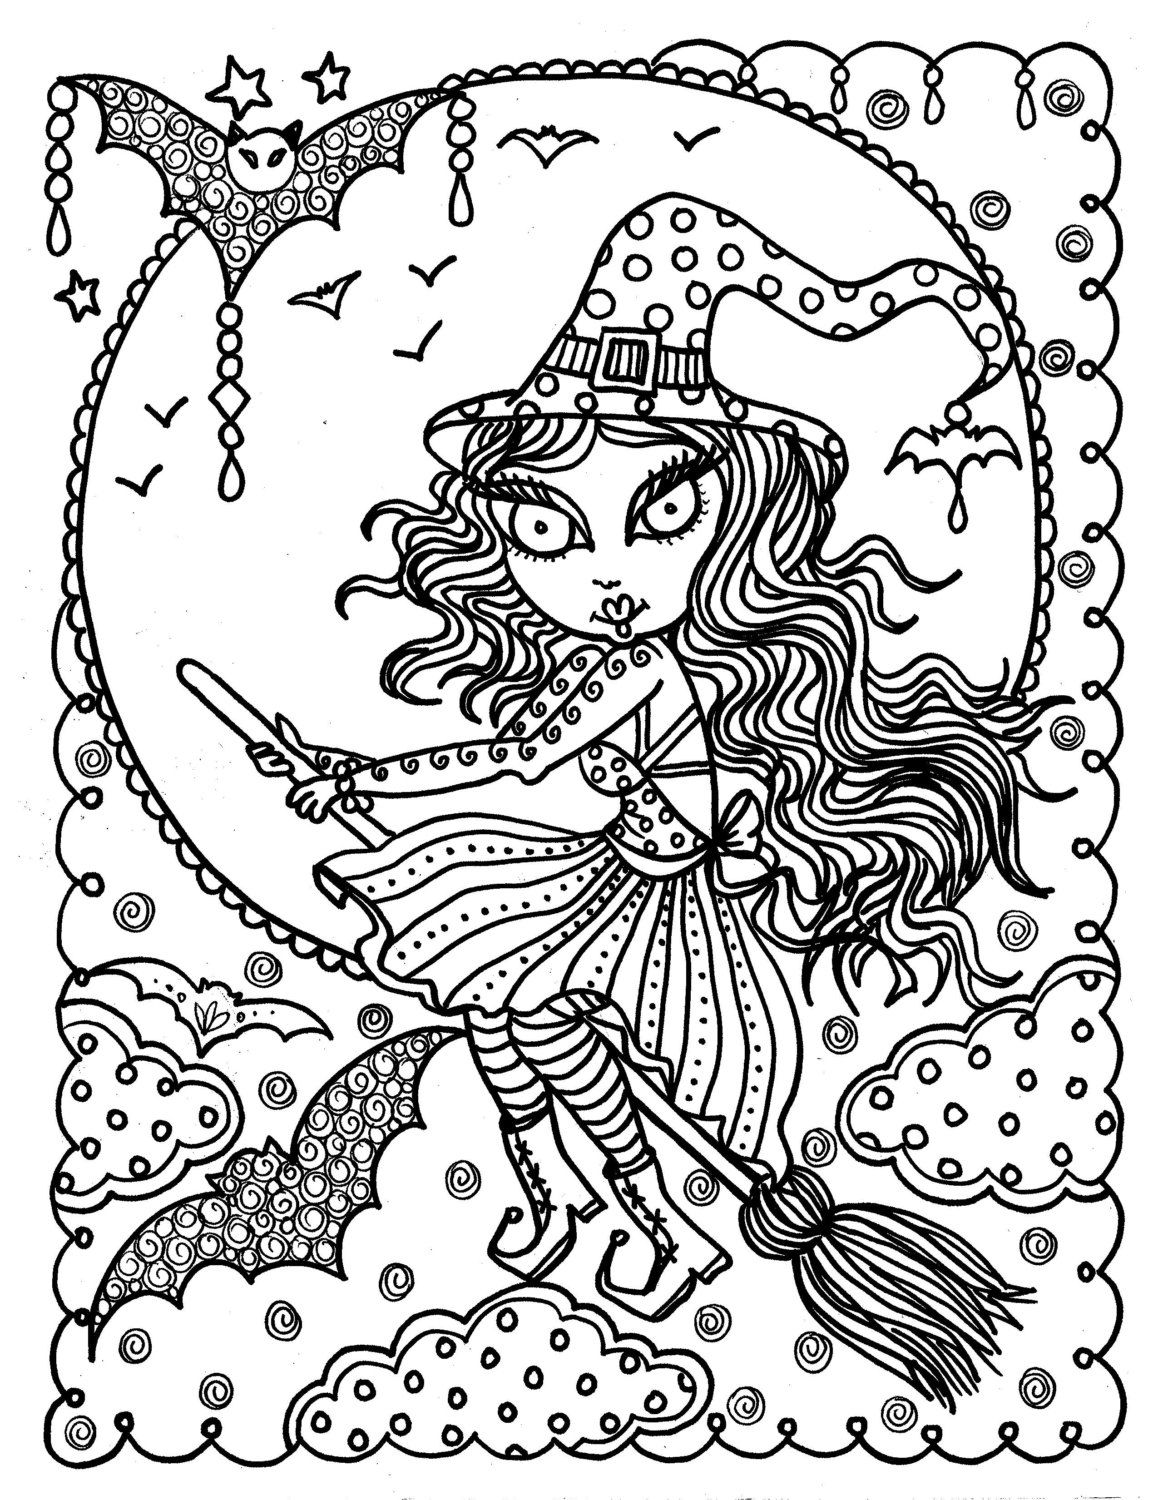 Cute Witch Halloween Coloring Page Fun Instant Download Immediately Color Away By ChubbyMermaid On Etsy